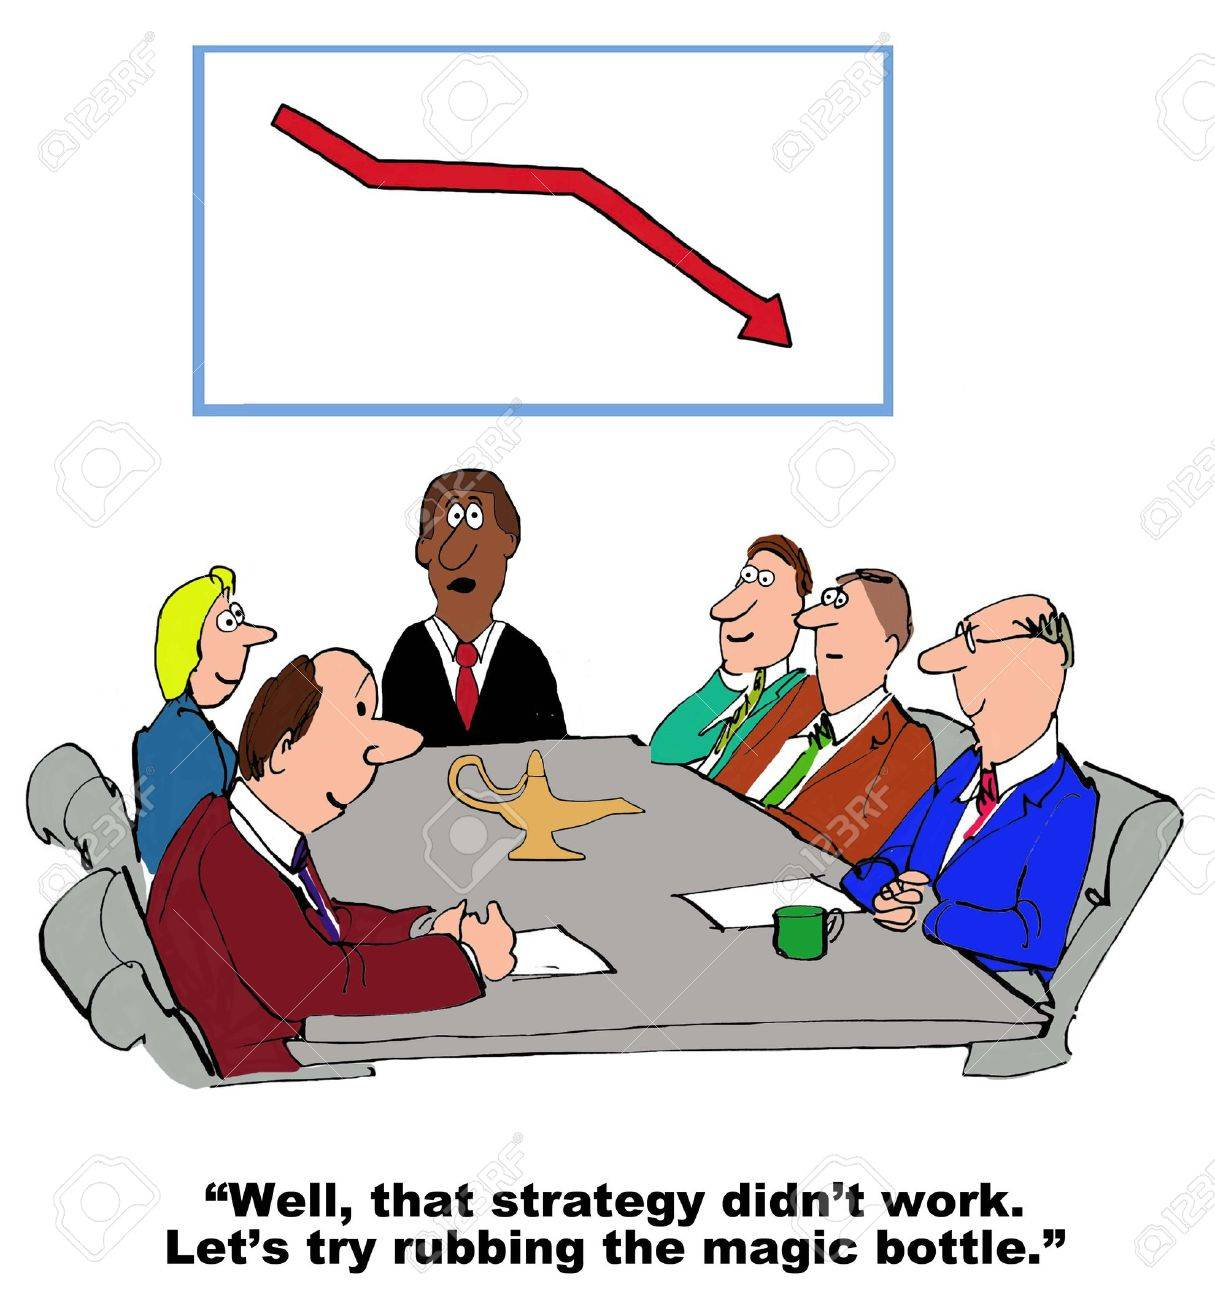 Business cartoon showing a strategy that did not work instead they will rub the magic bottle. - 41343593